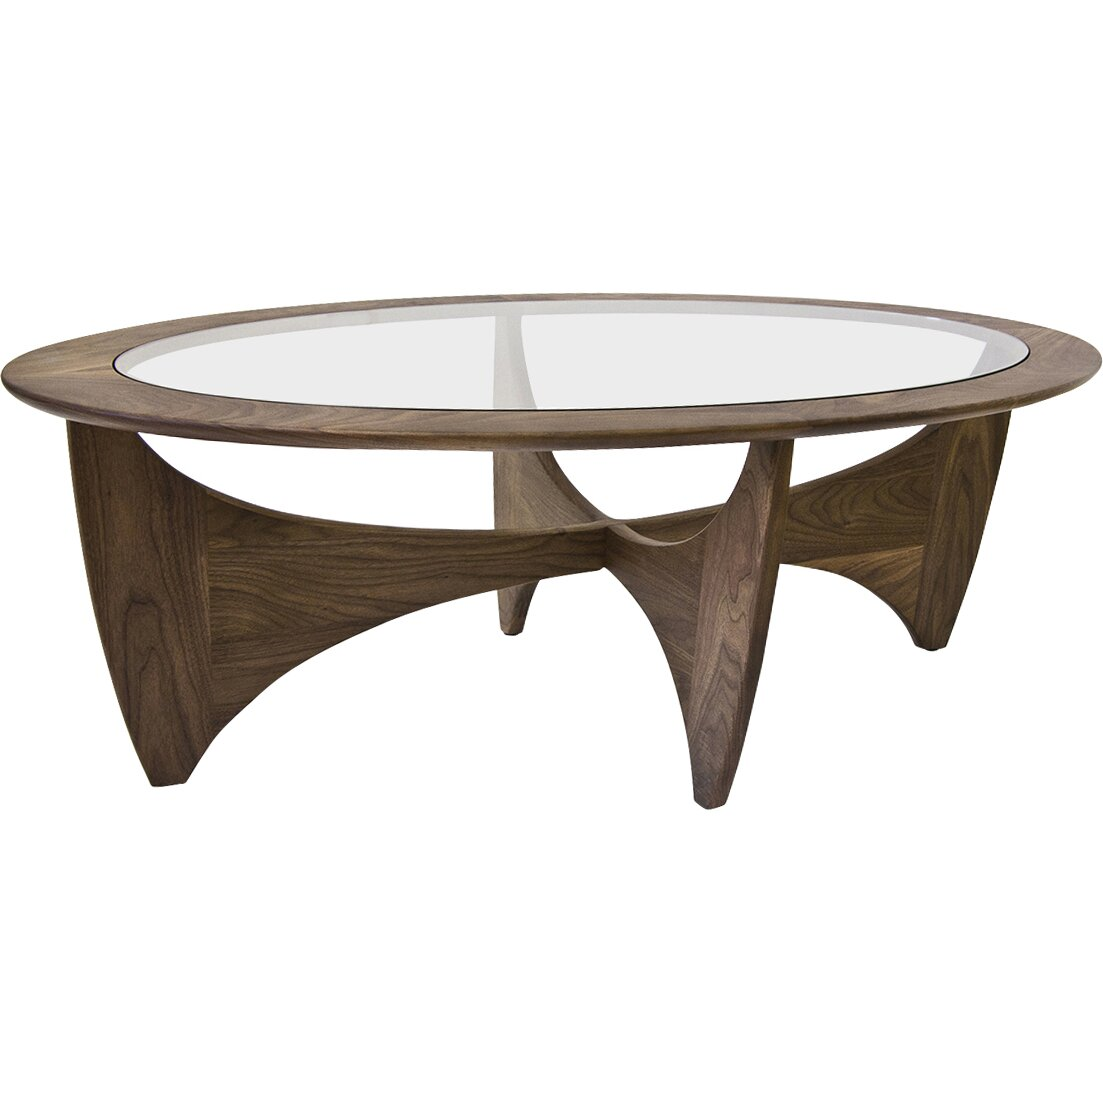 Aeon furniture angela coffee table reviews wayfair for I furniture reviews